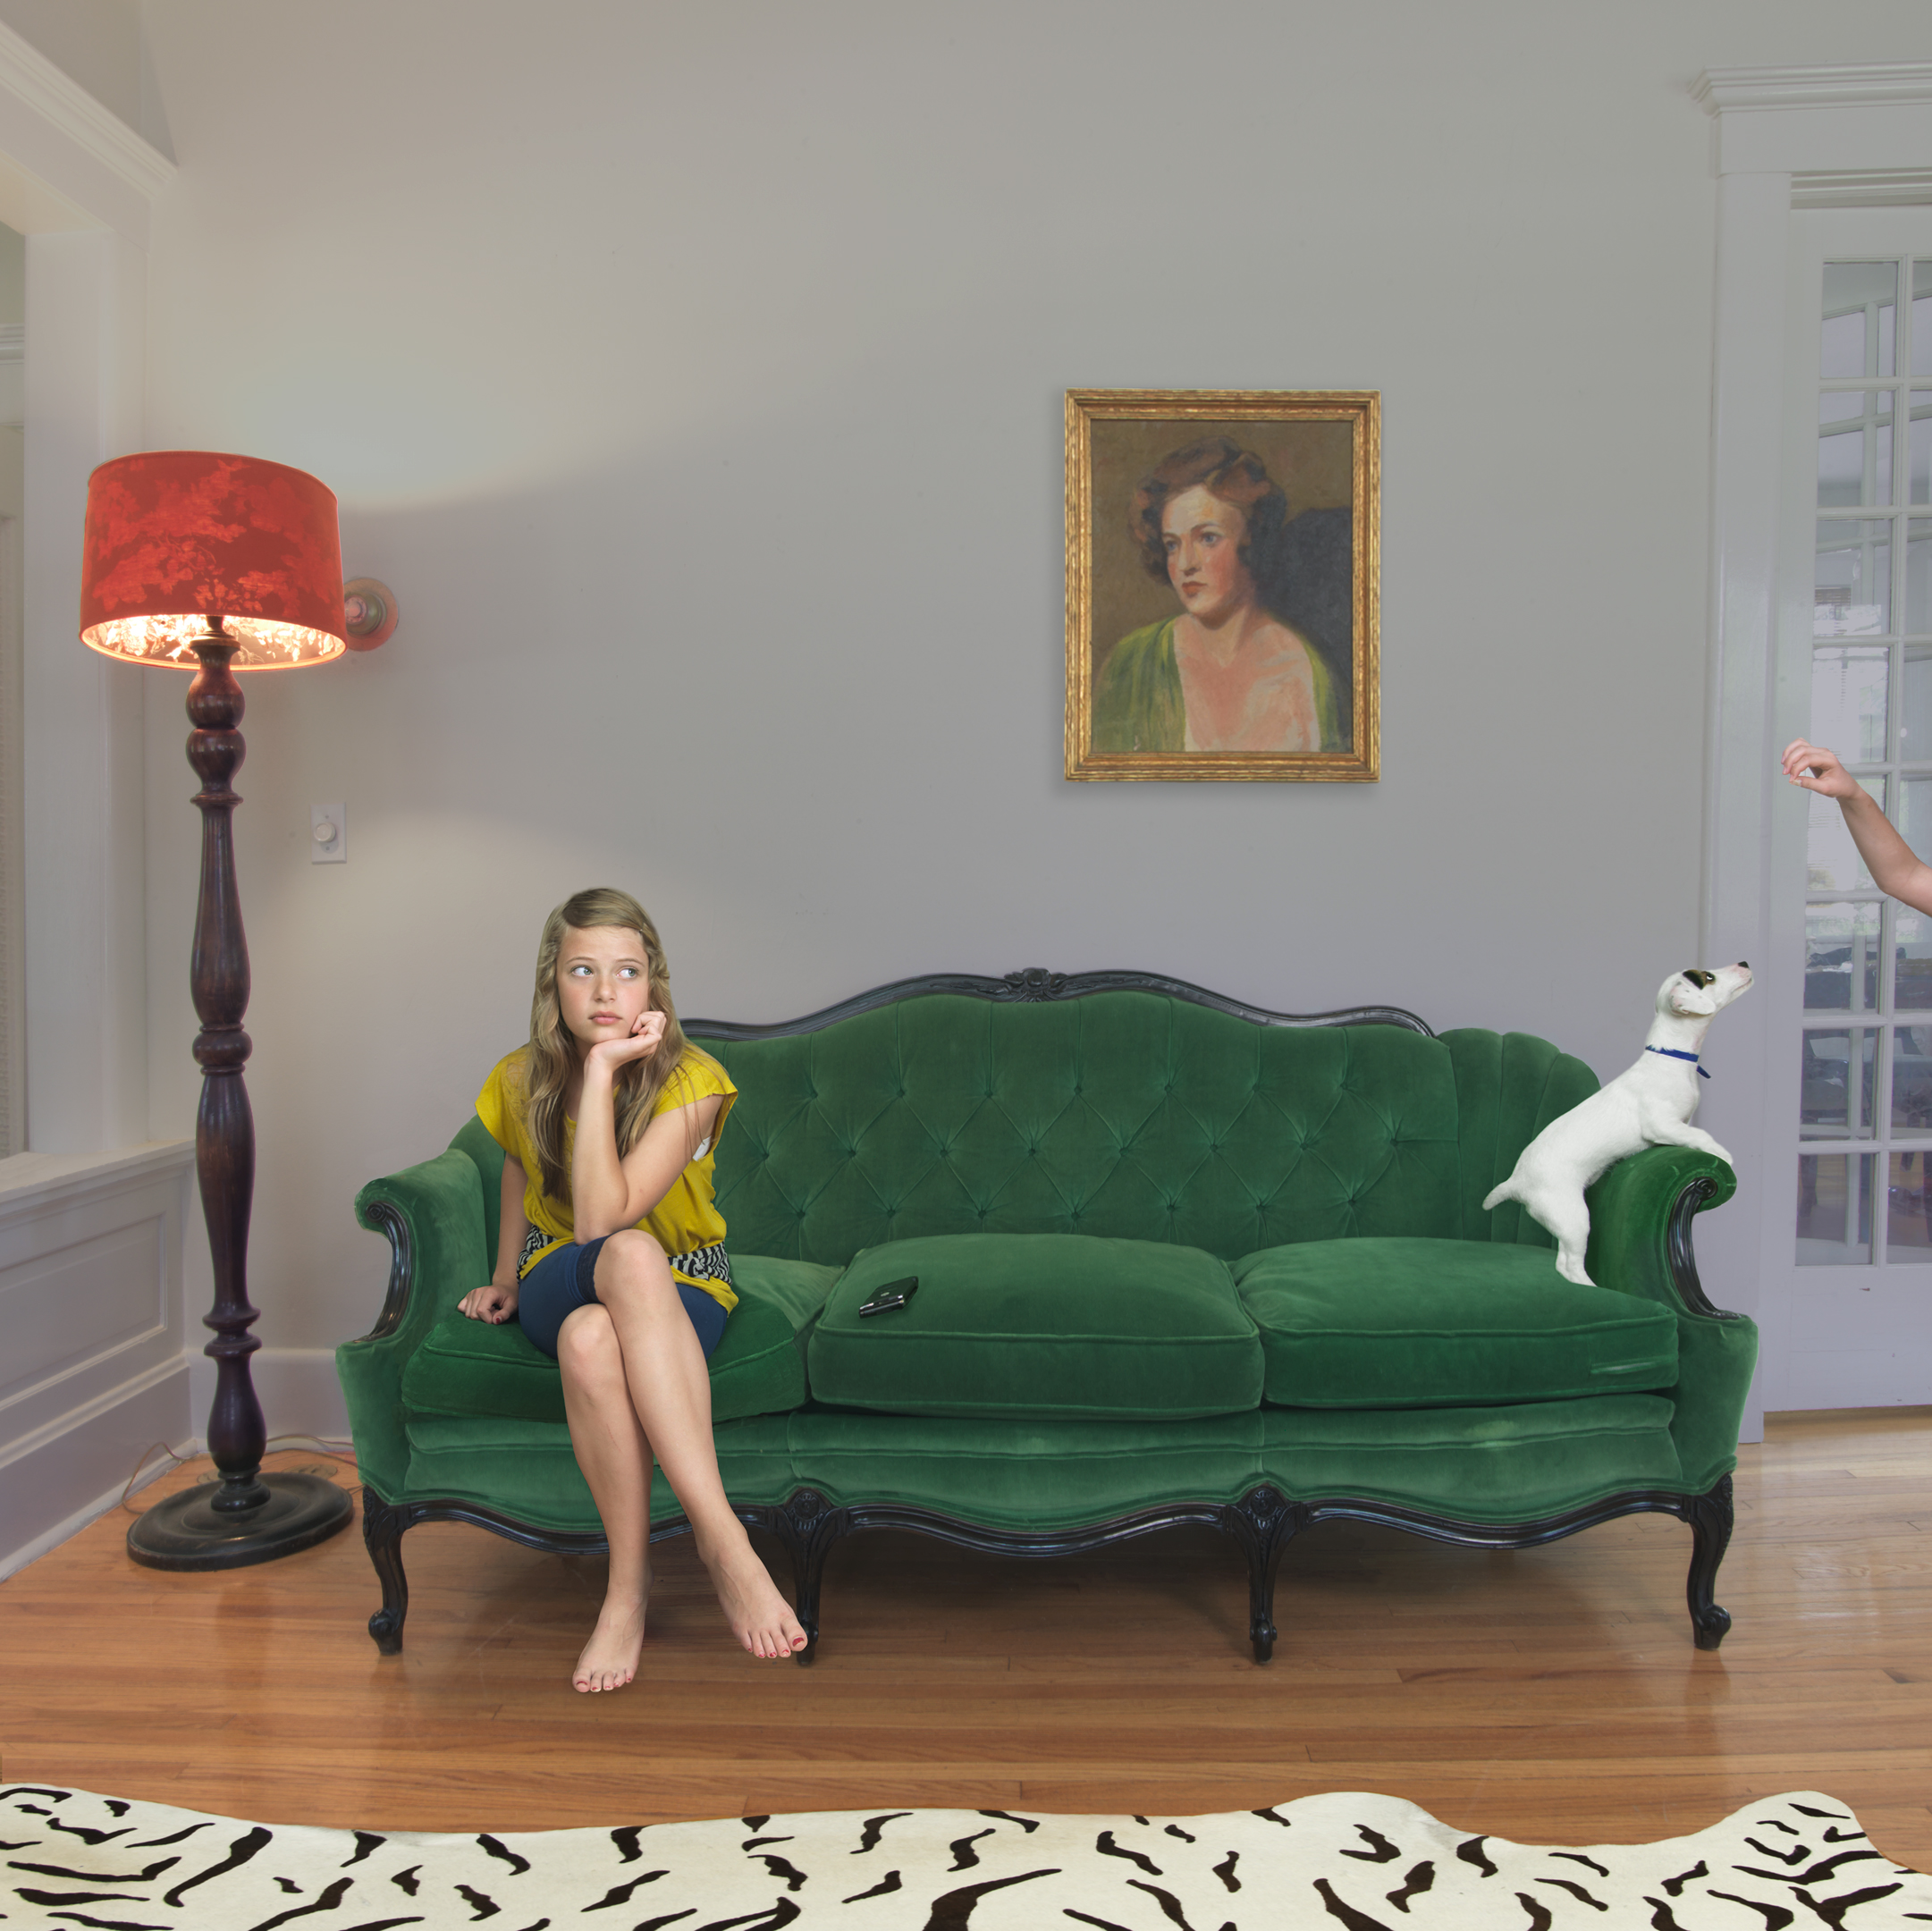 emerald green velvet sofa bed leather for sleeping domestic vacations by julie blackmon staged photography